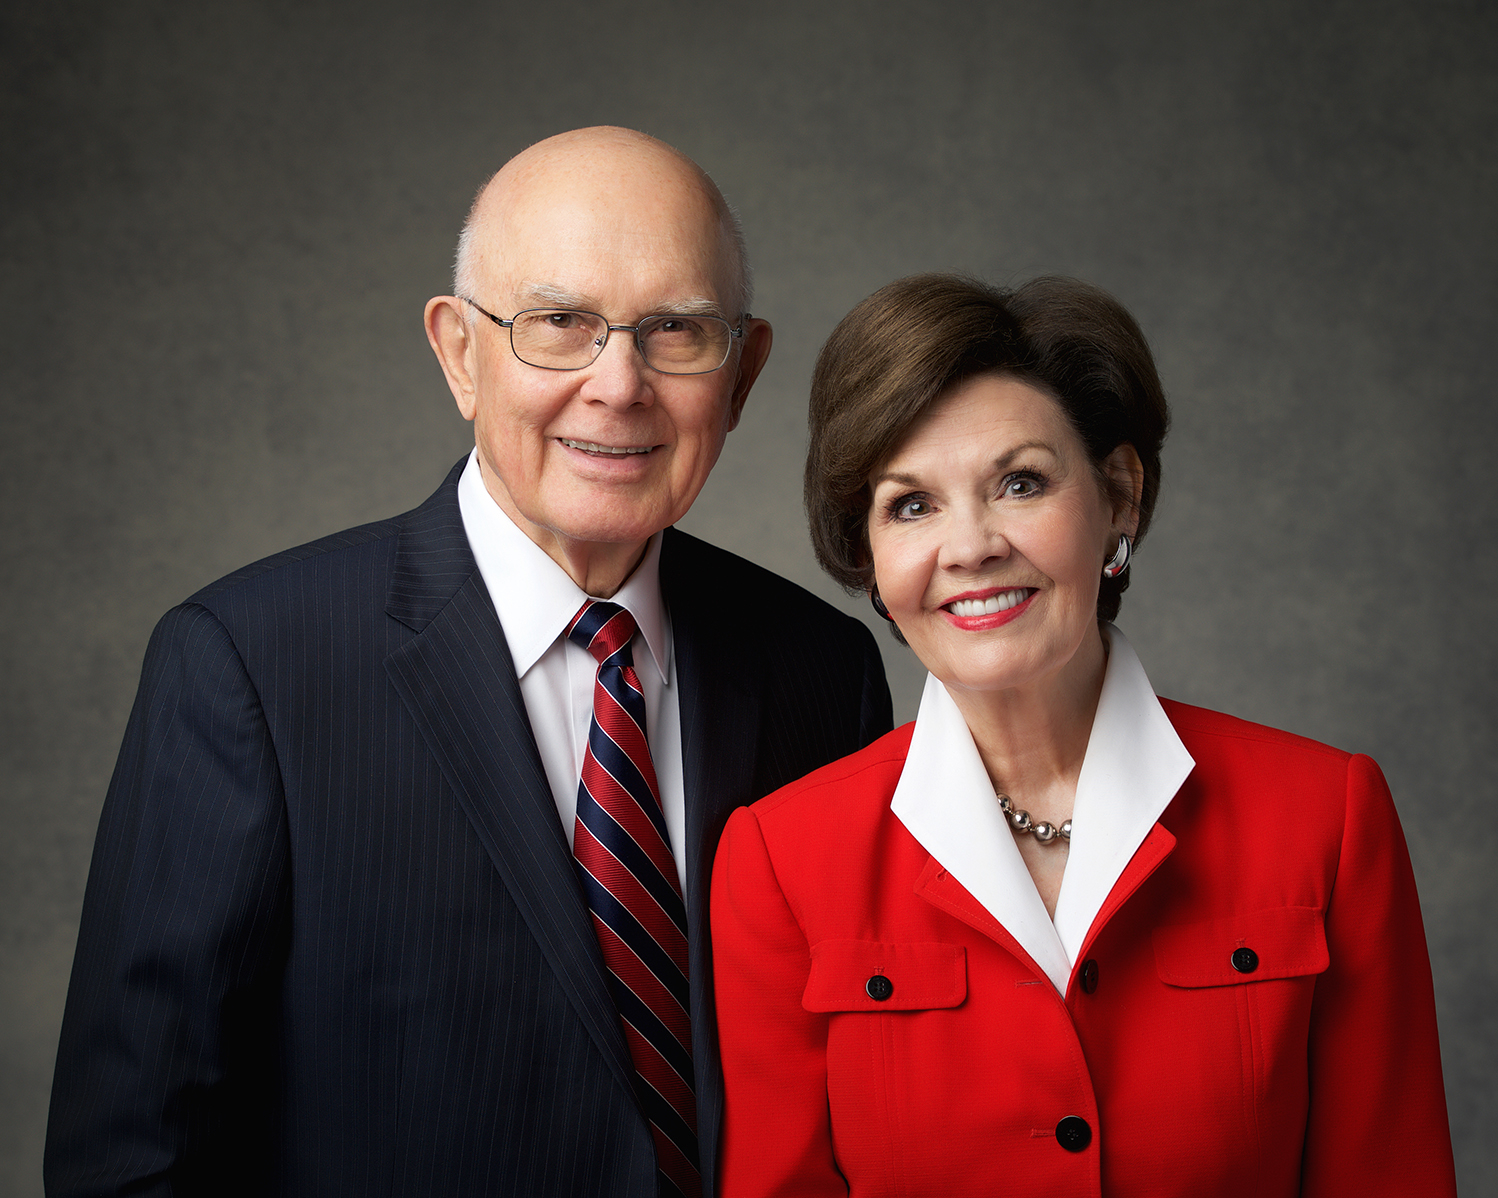 President Dallin H. Oaks and Sister Kristen M. Oaks.